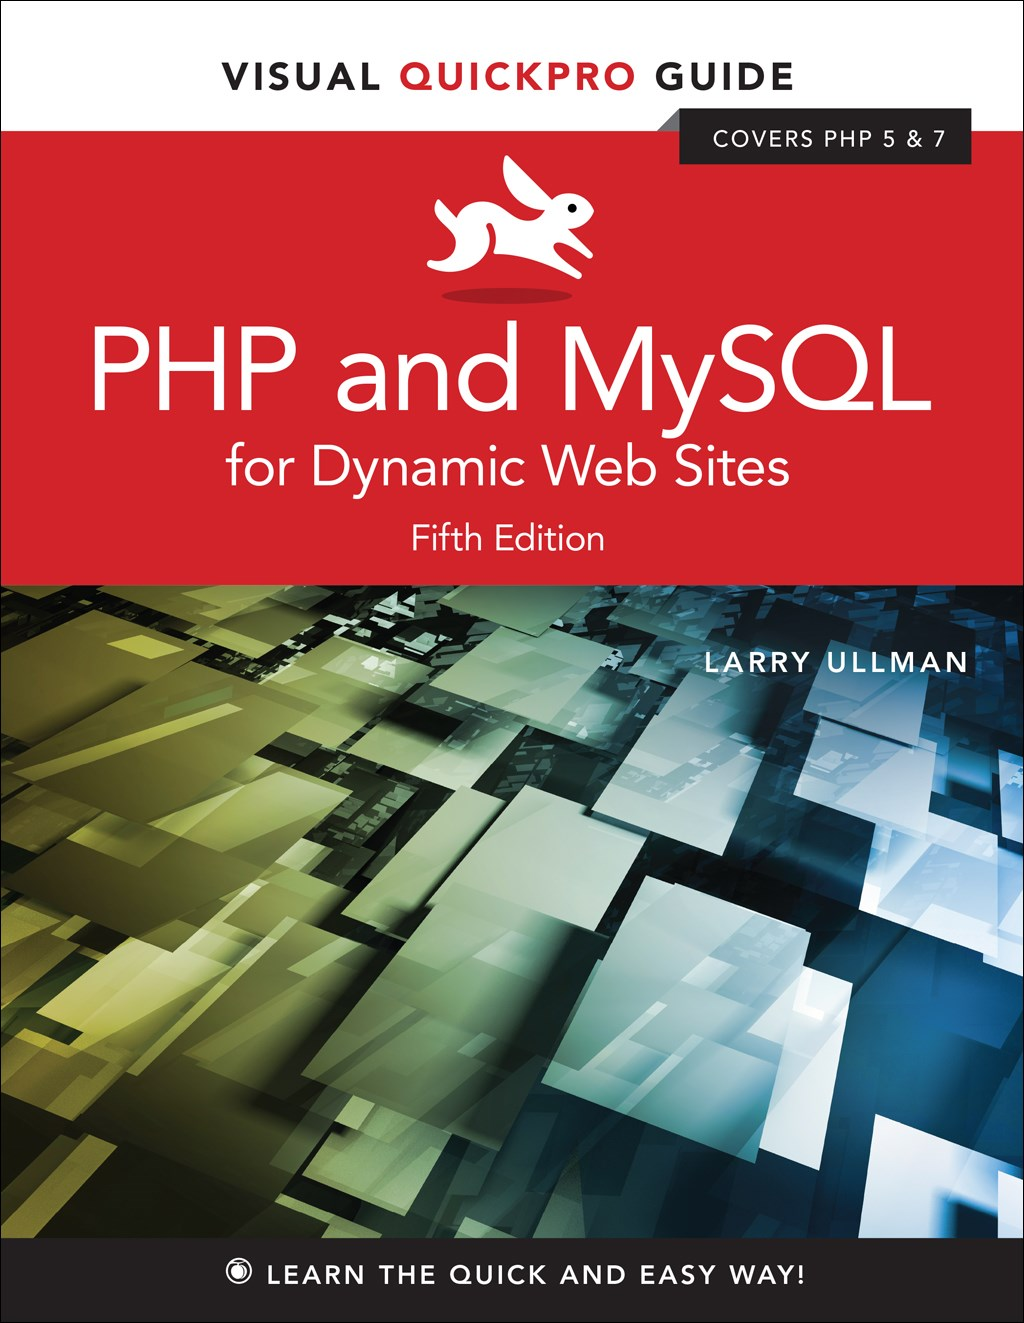 PHP and MySQL for Dynamic Web Sites: Visual QuickPro Guide, 5th Edition